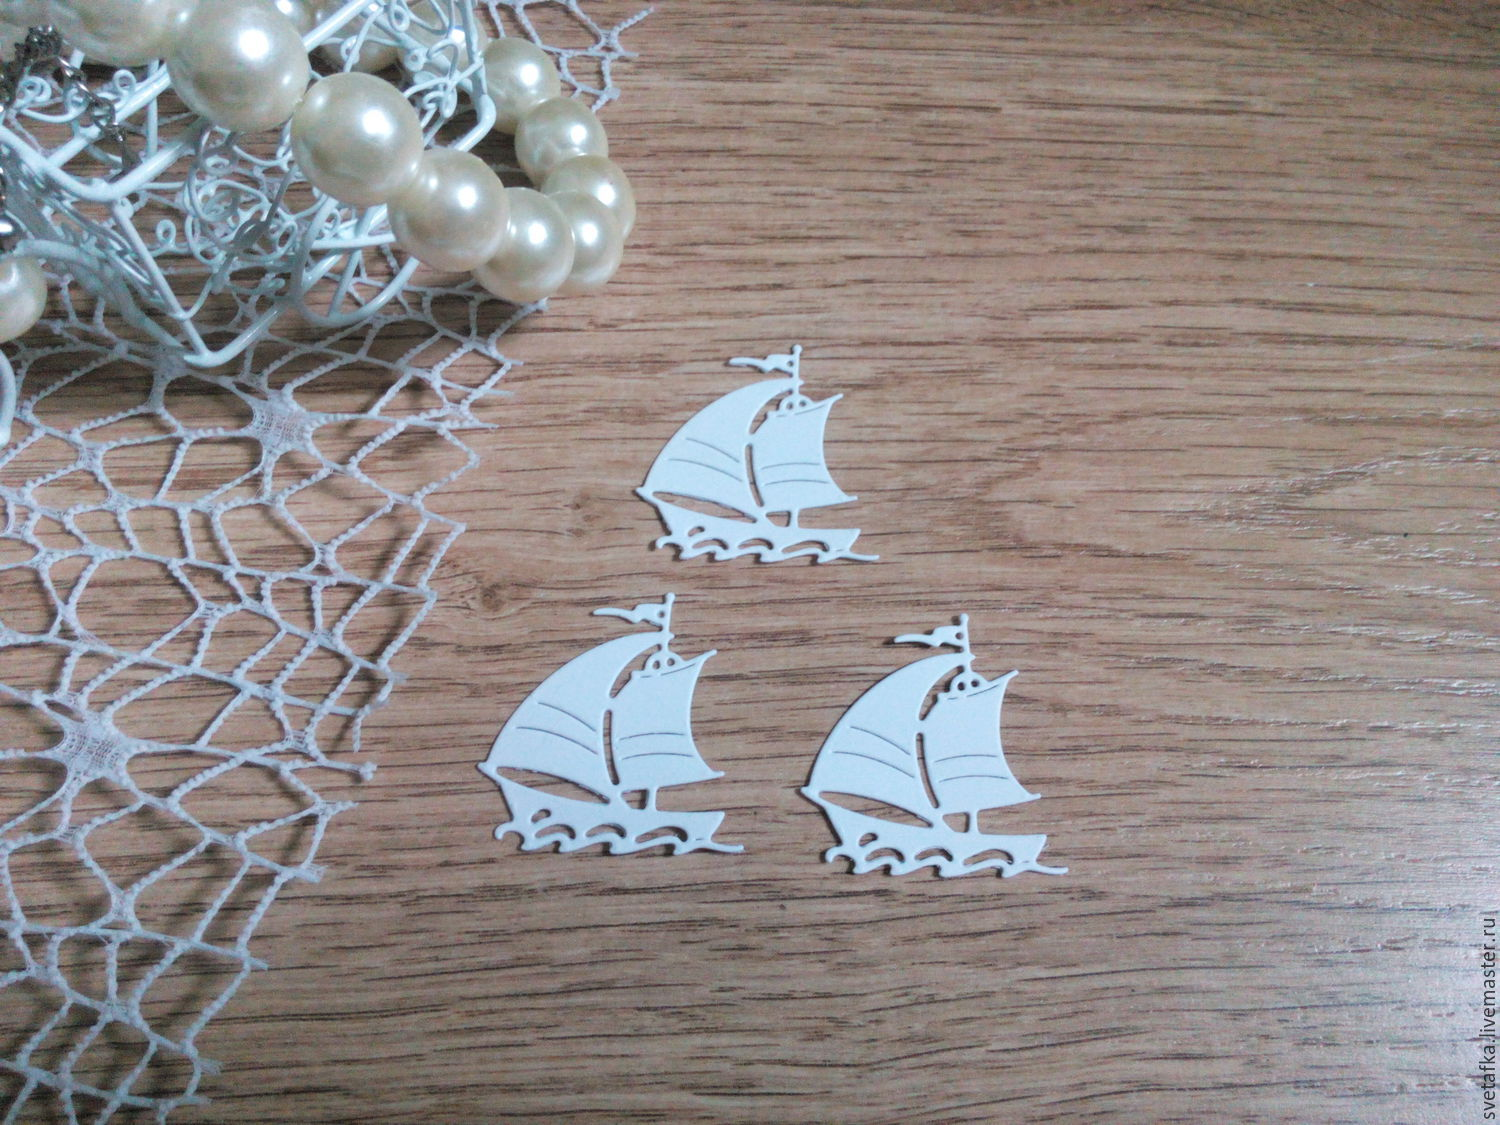 !Cutting scrapbooking embossed - BOAT from holiday), Scrapbooking cuttings, Mytishchi,  Фото №1